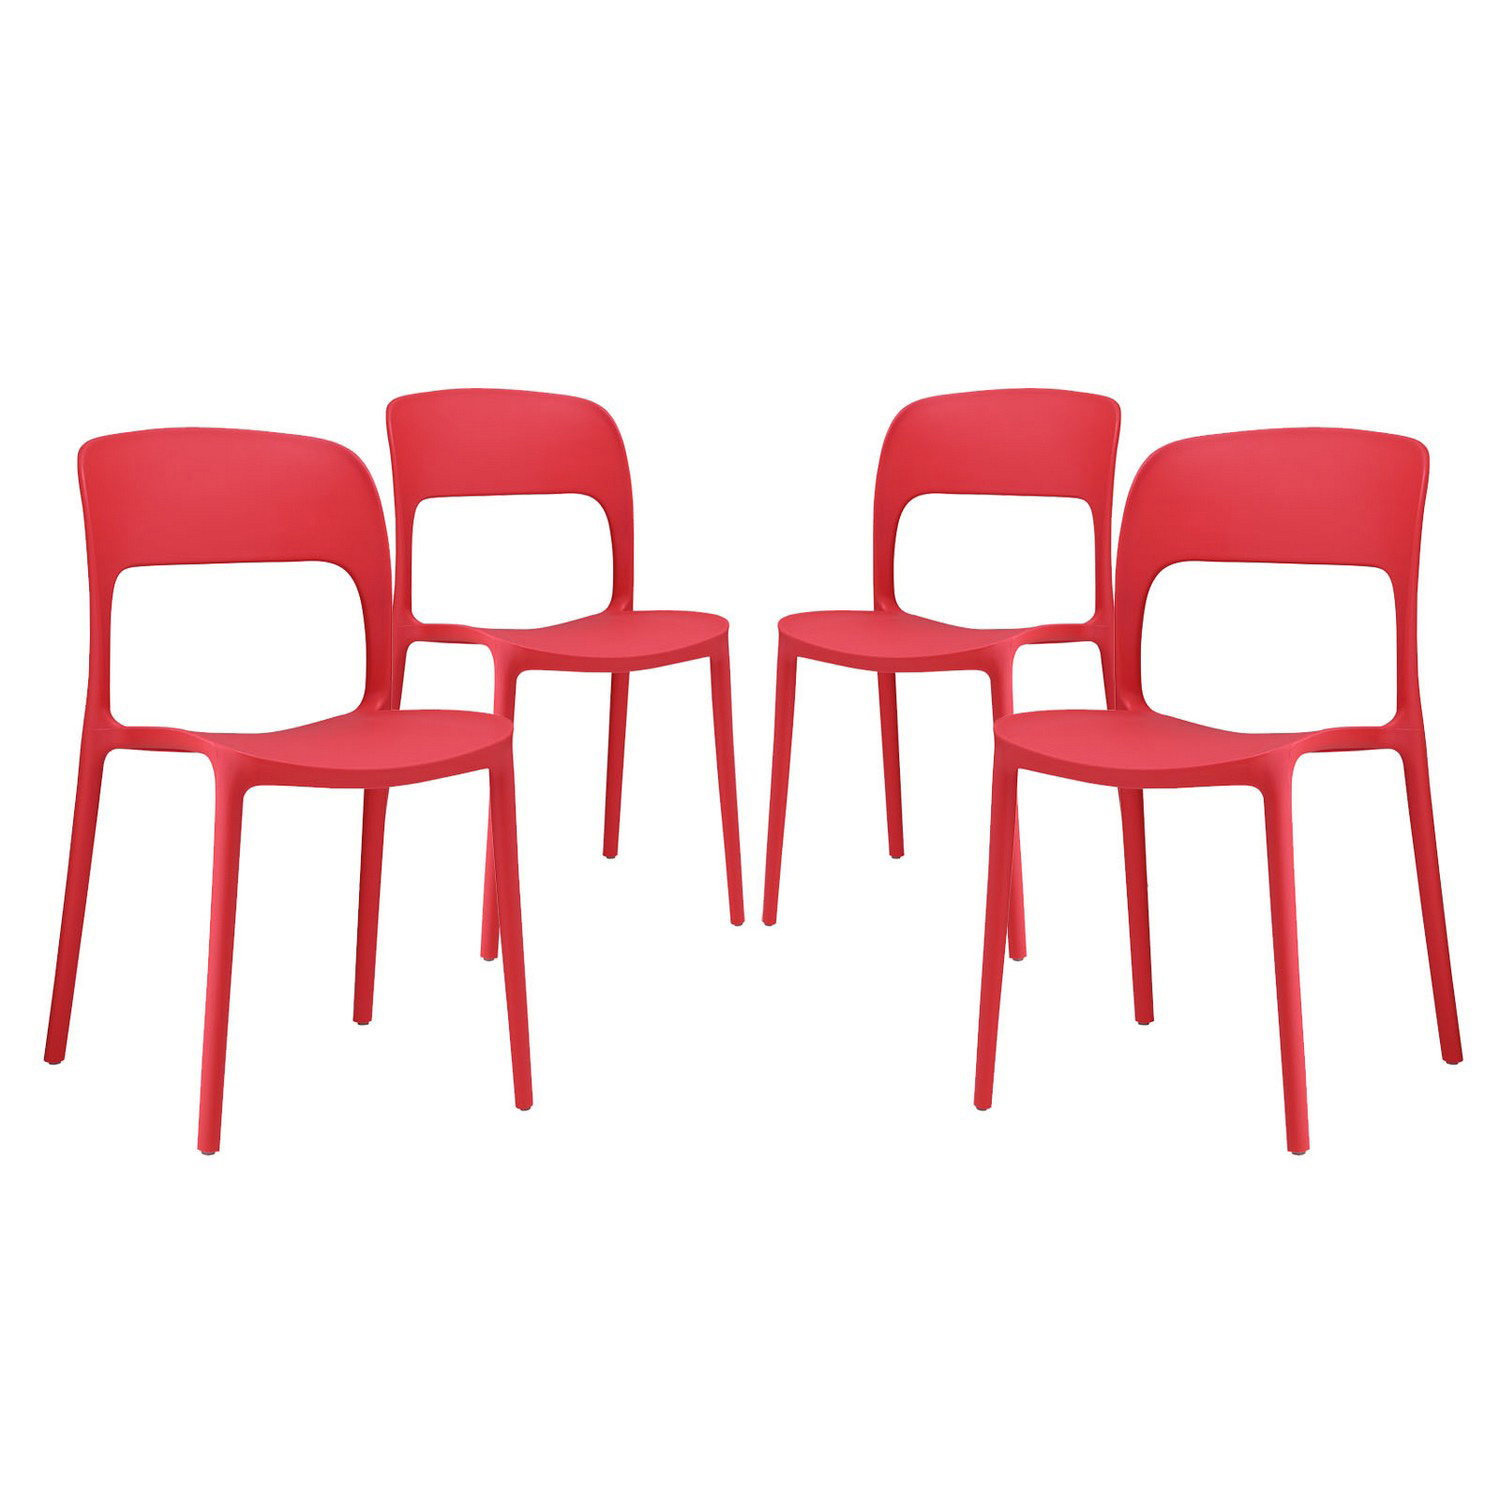 Modway Hop Dining Chair - Set of 4 - Red